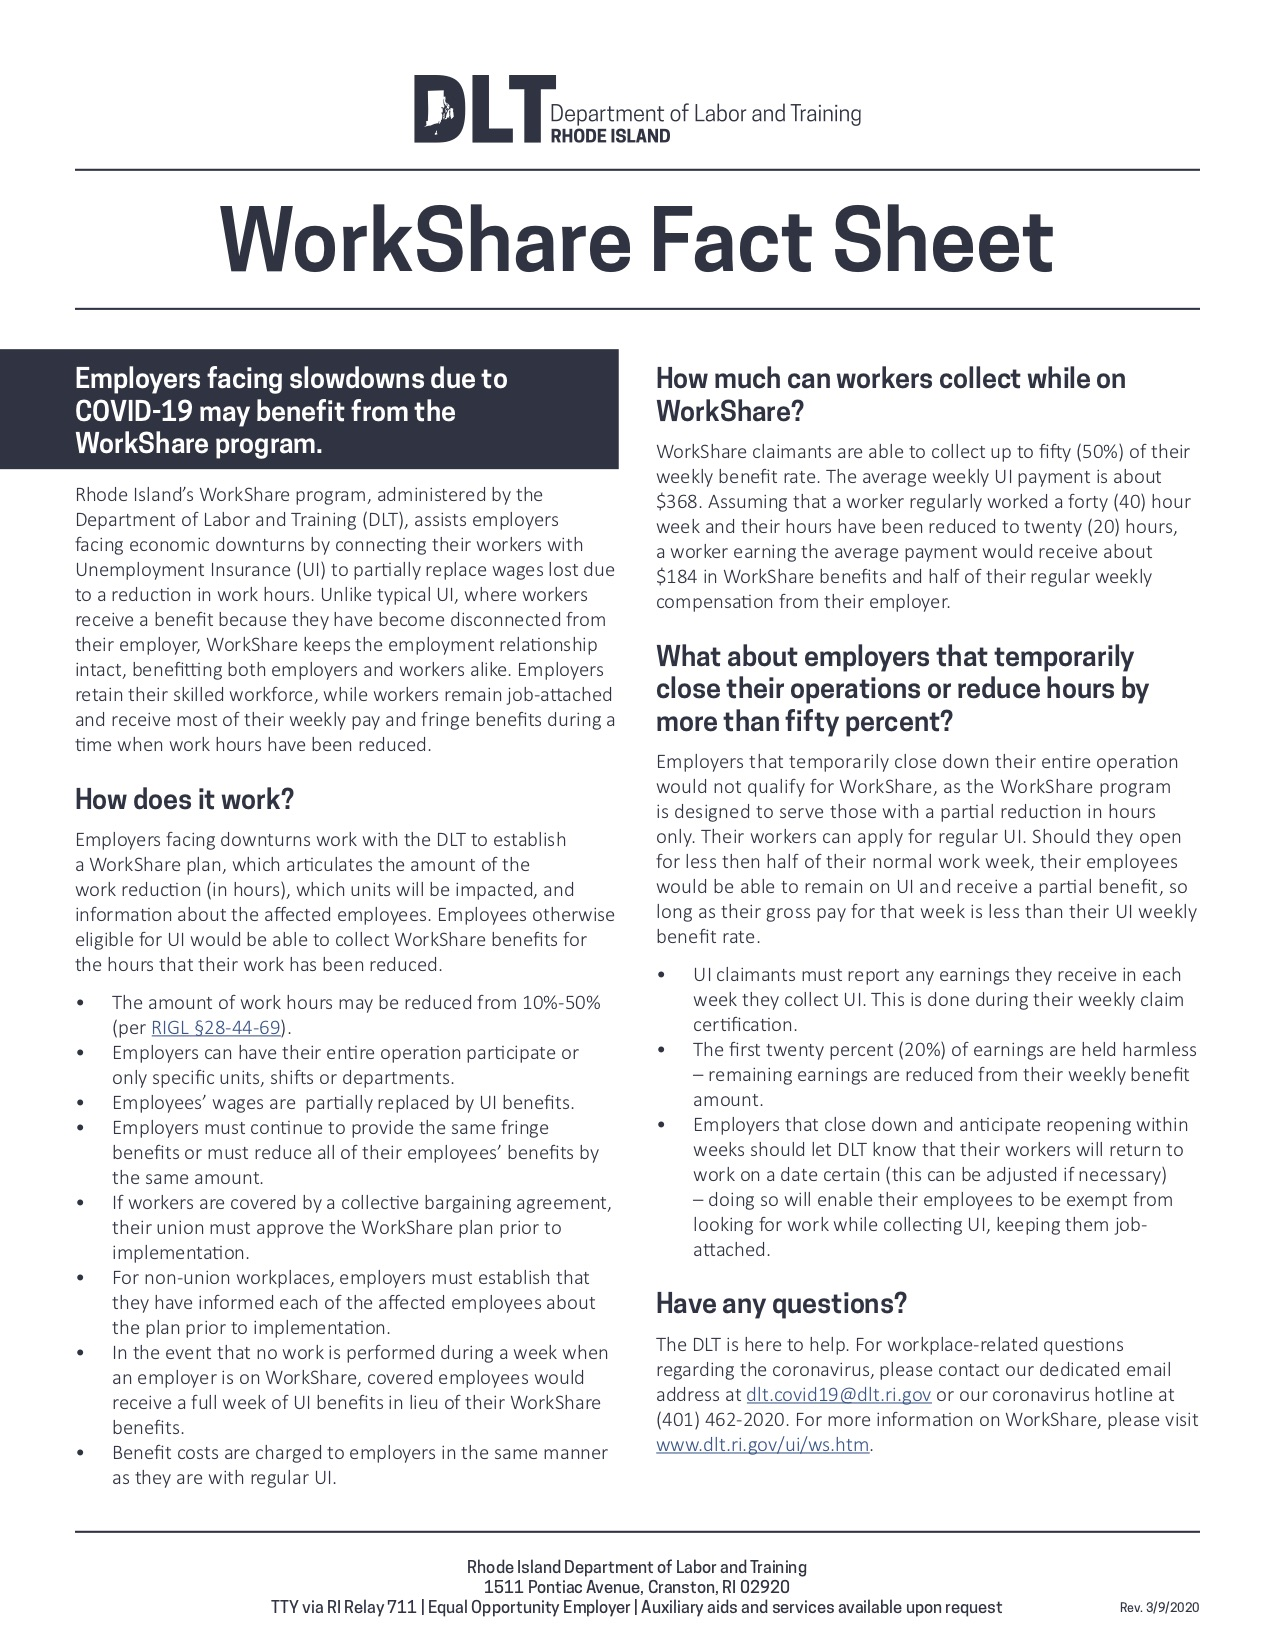 WorkShare-COVID19-One-Pager.jpg